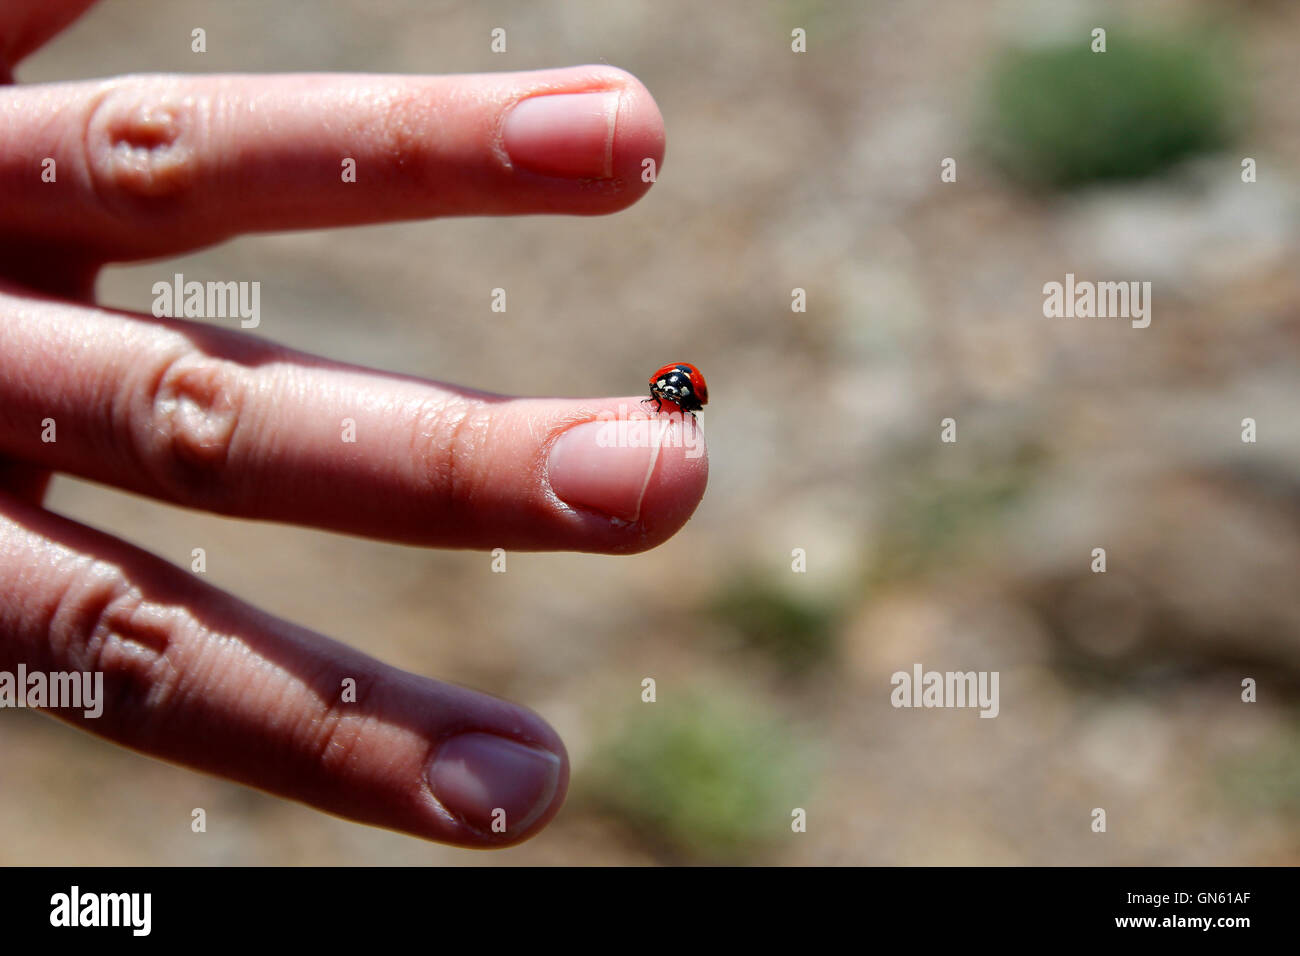 Ladybug in the middle finger, with open hand - Stock Image